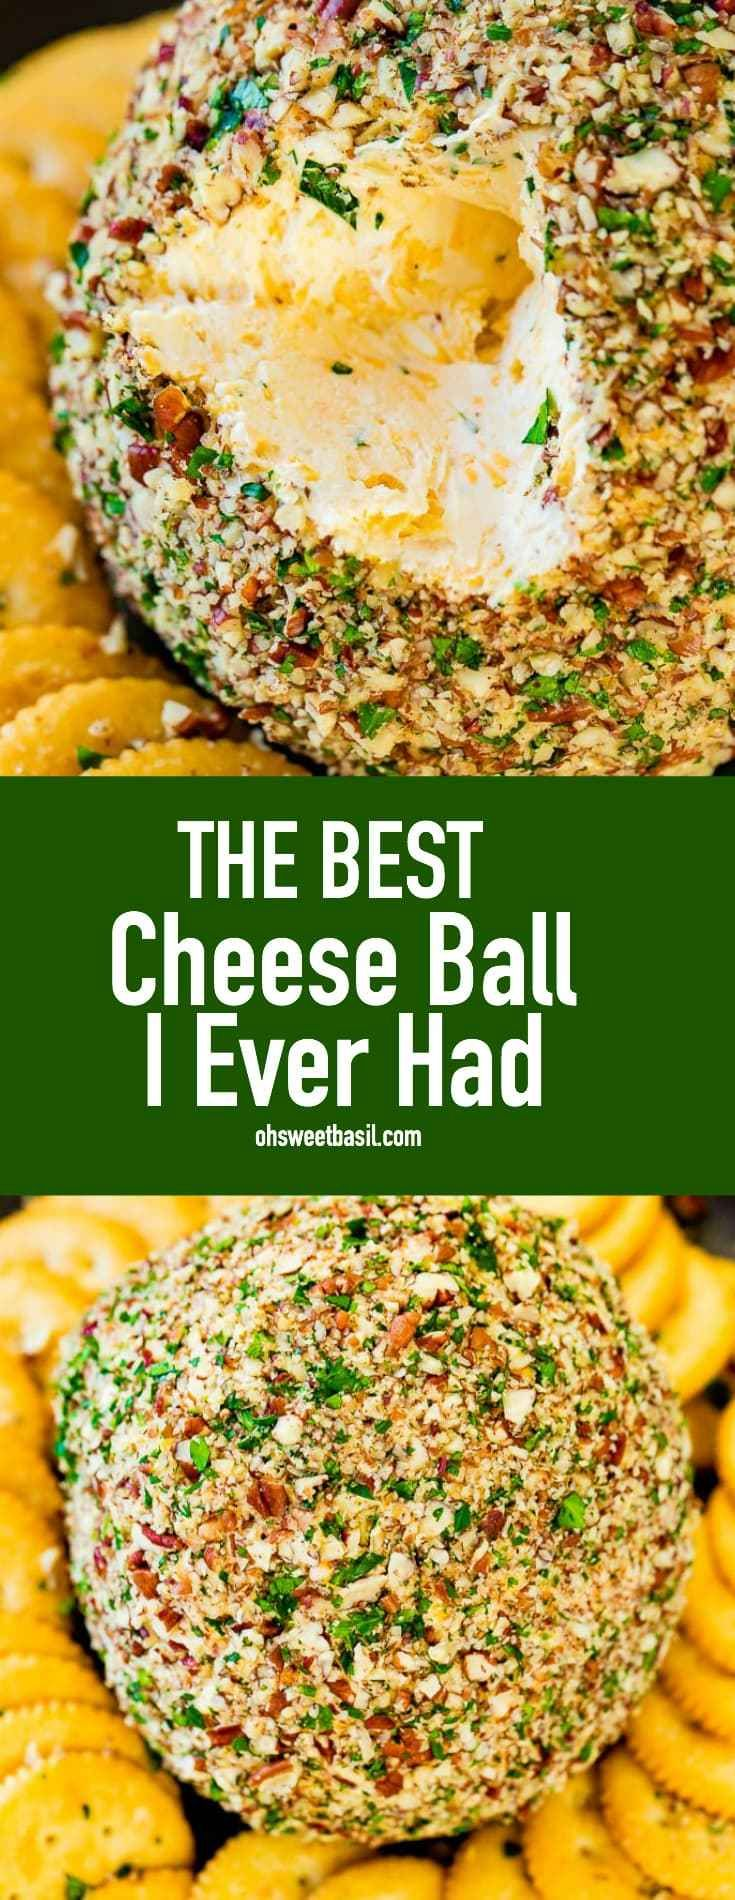 The Best Cheese Ball I Ever Had - Oh Sweet Basil